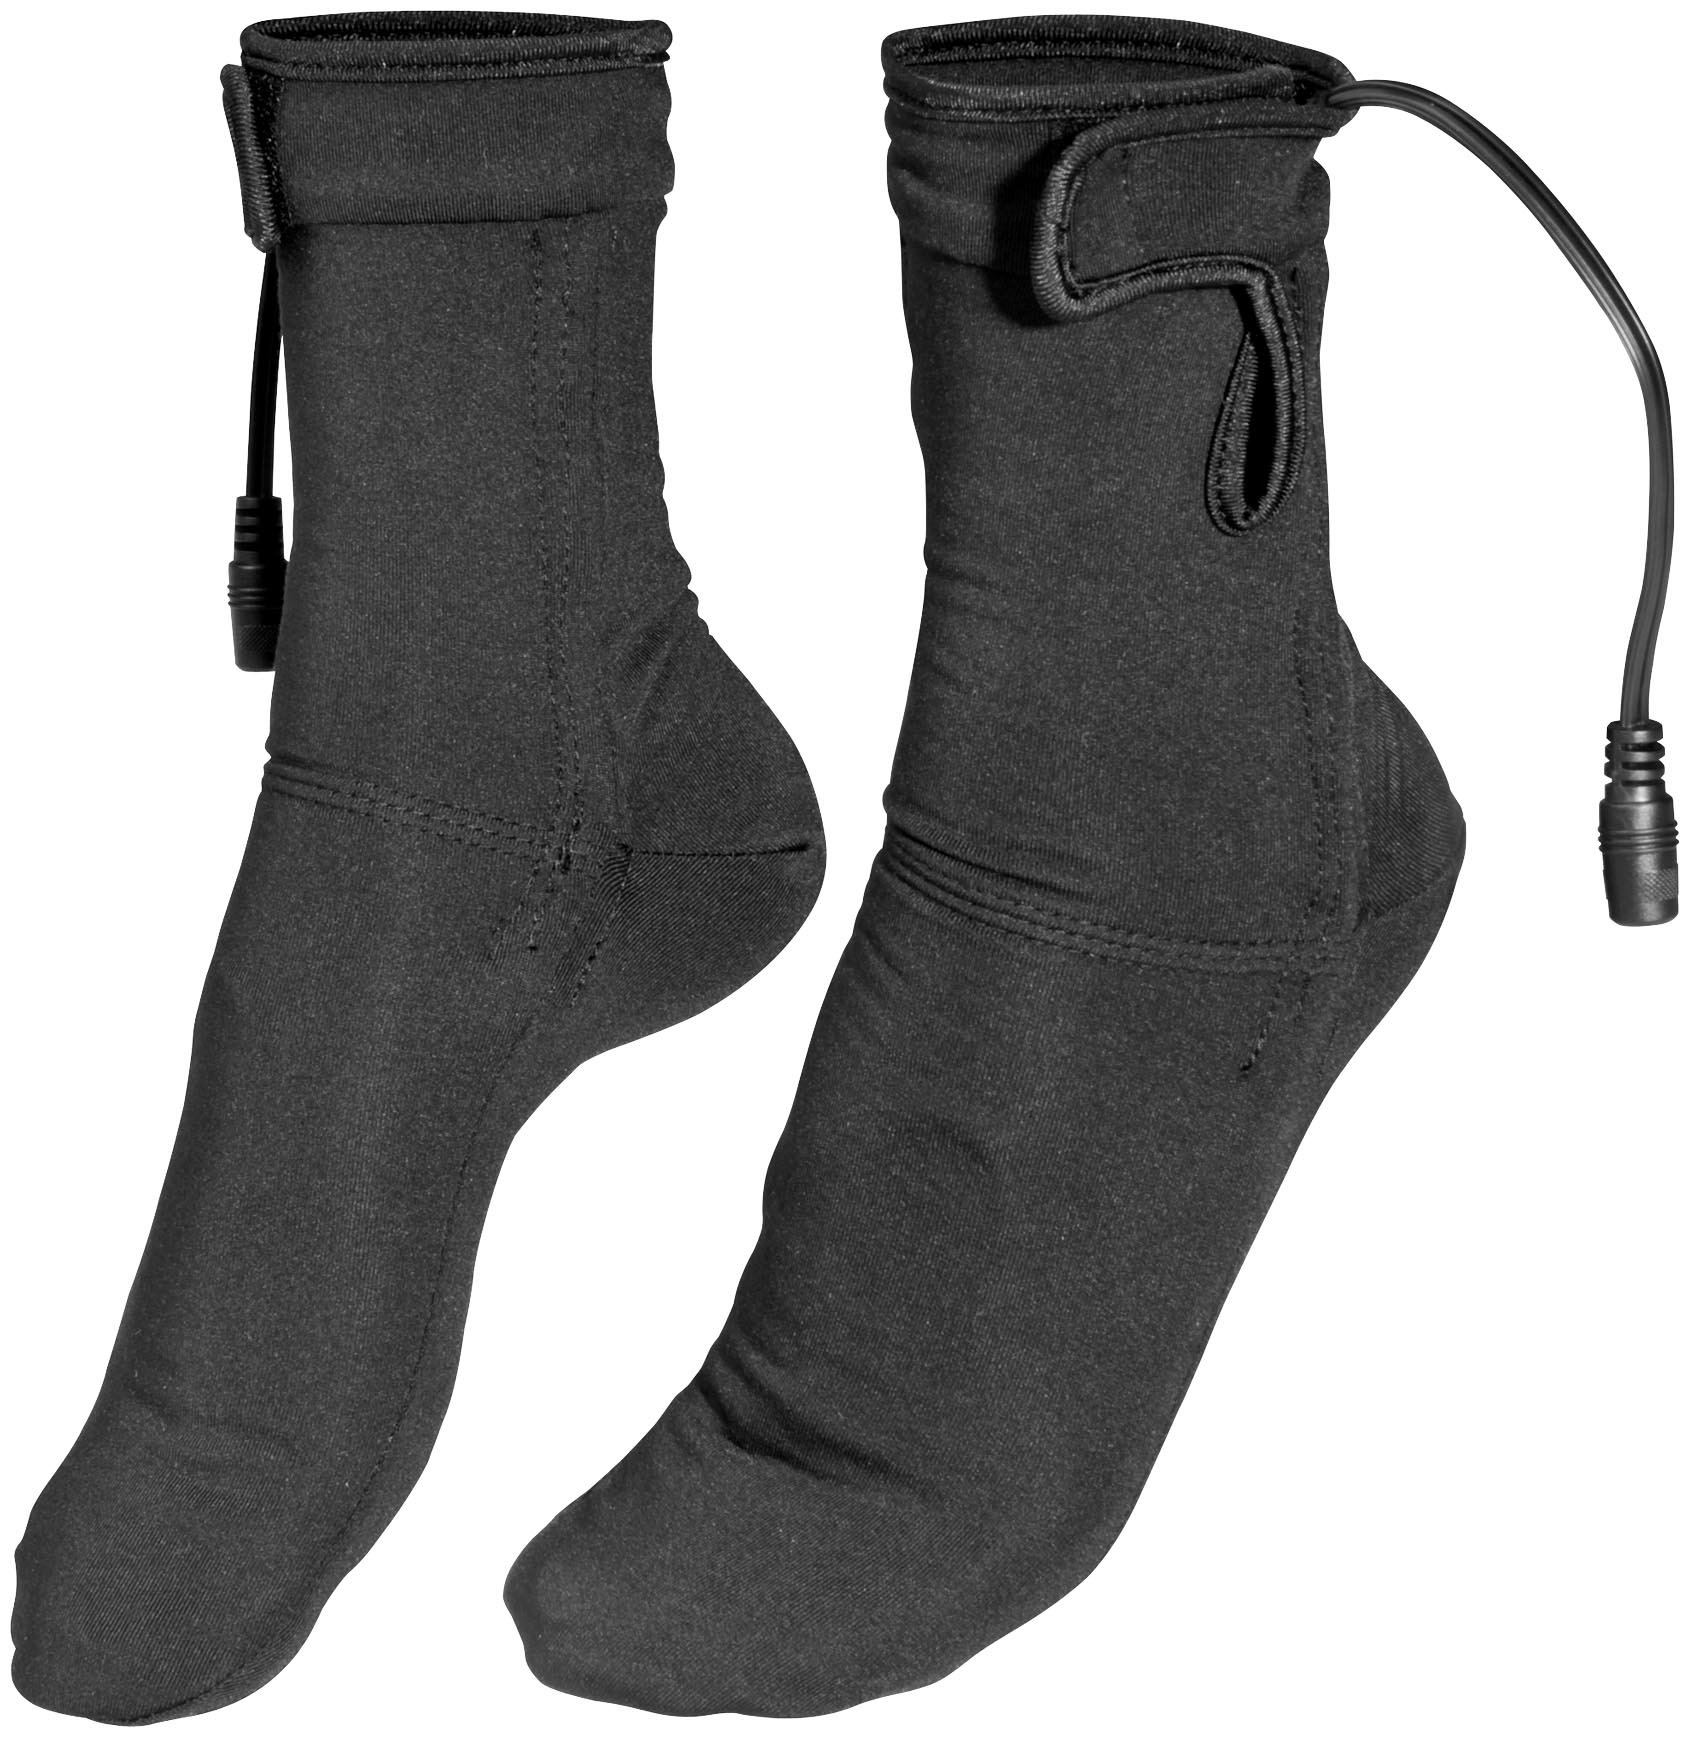 Firstgear Heated Socks (MEDIUM) (BLACK) for Motorcycle Riders by Firstgear